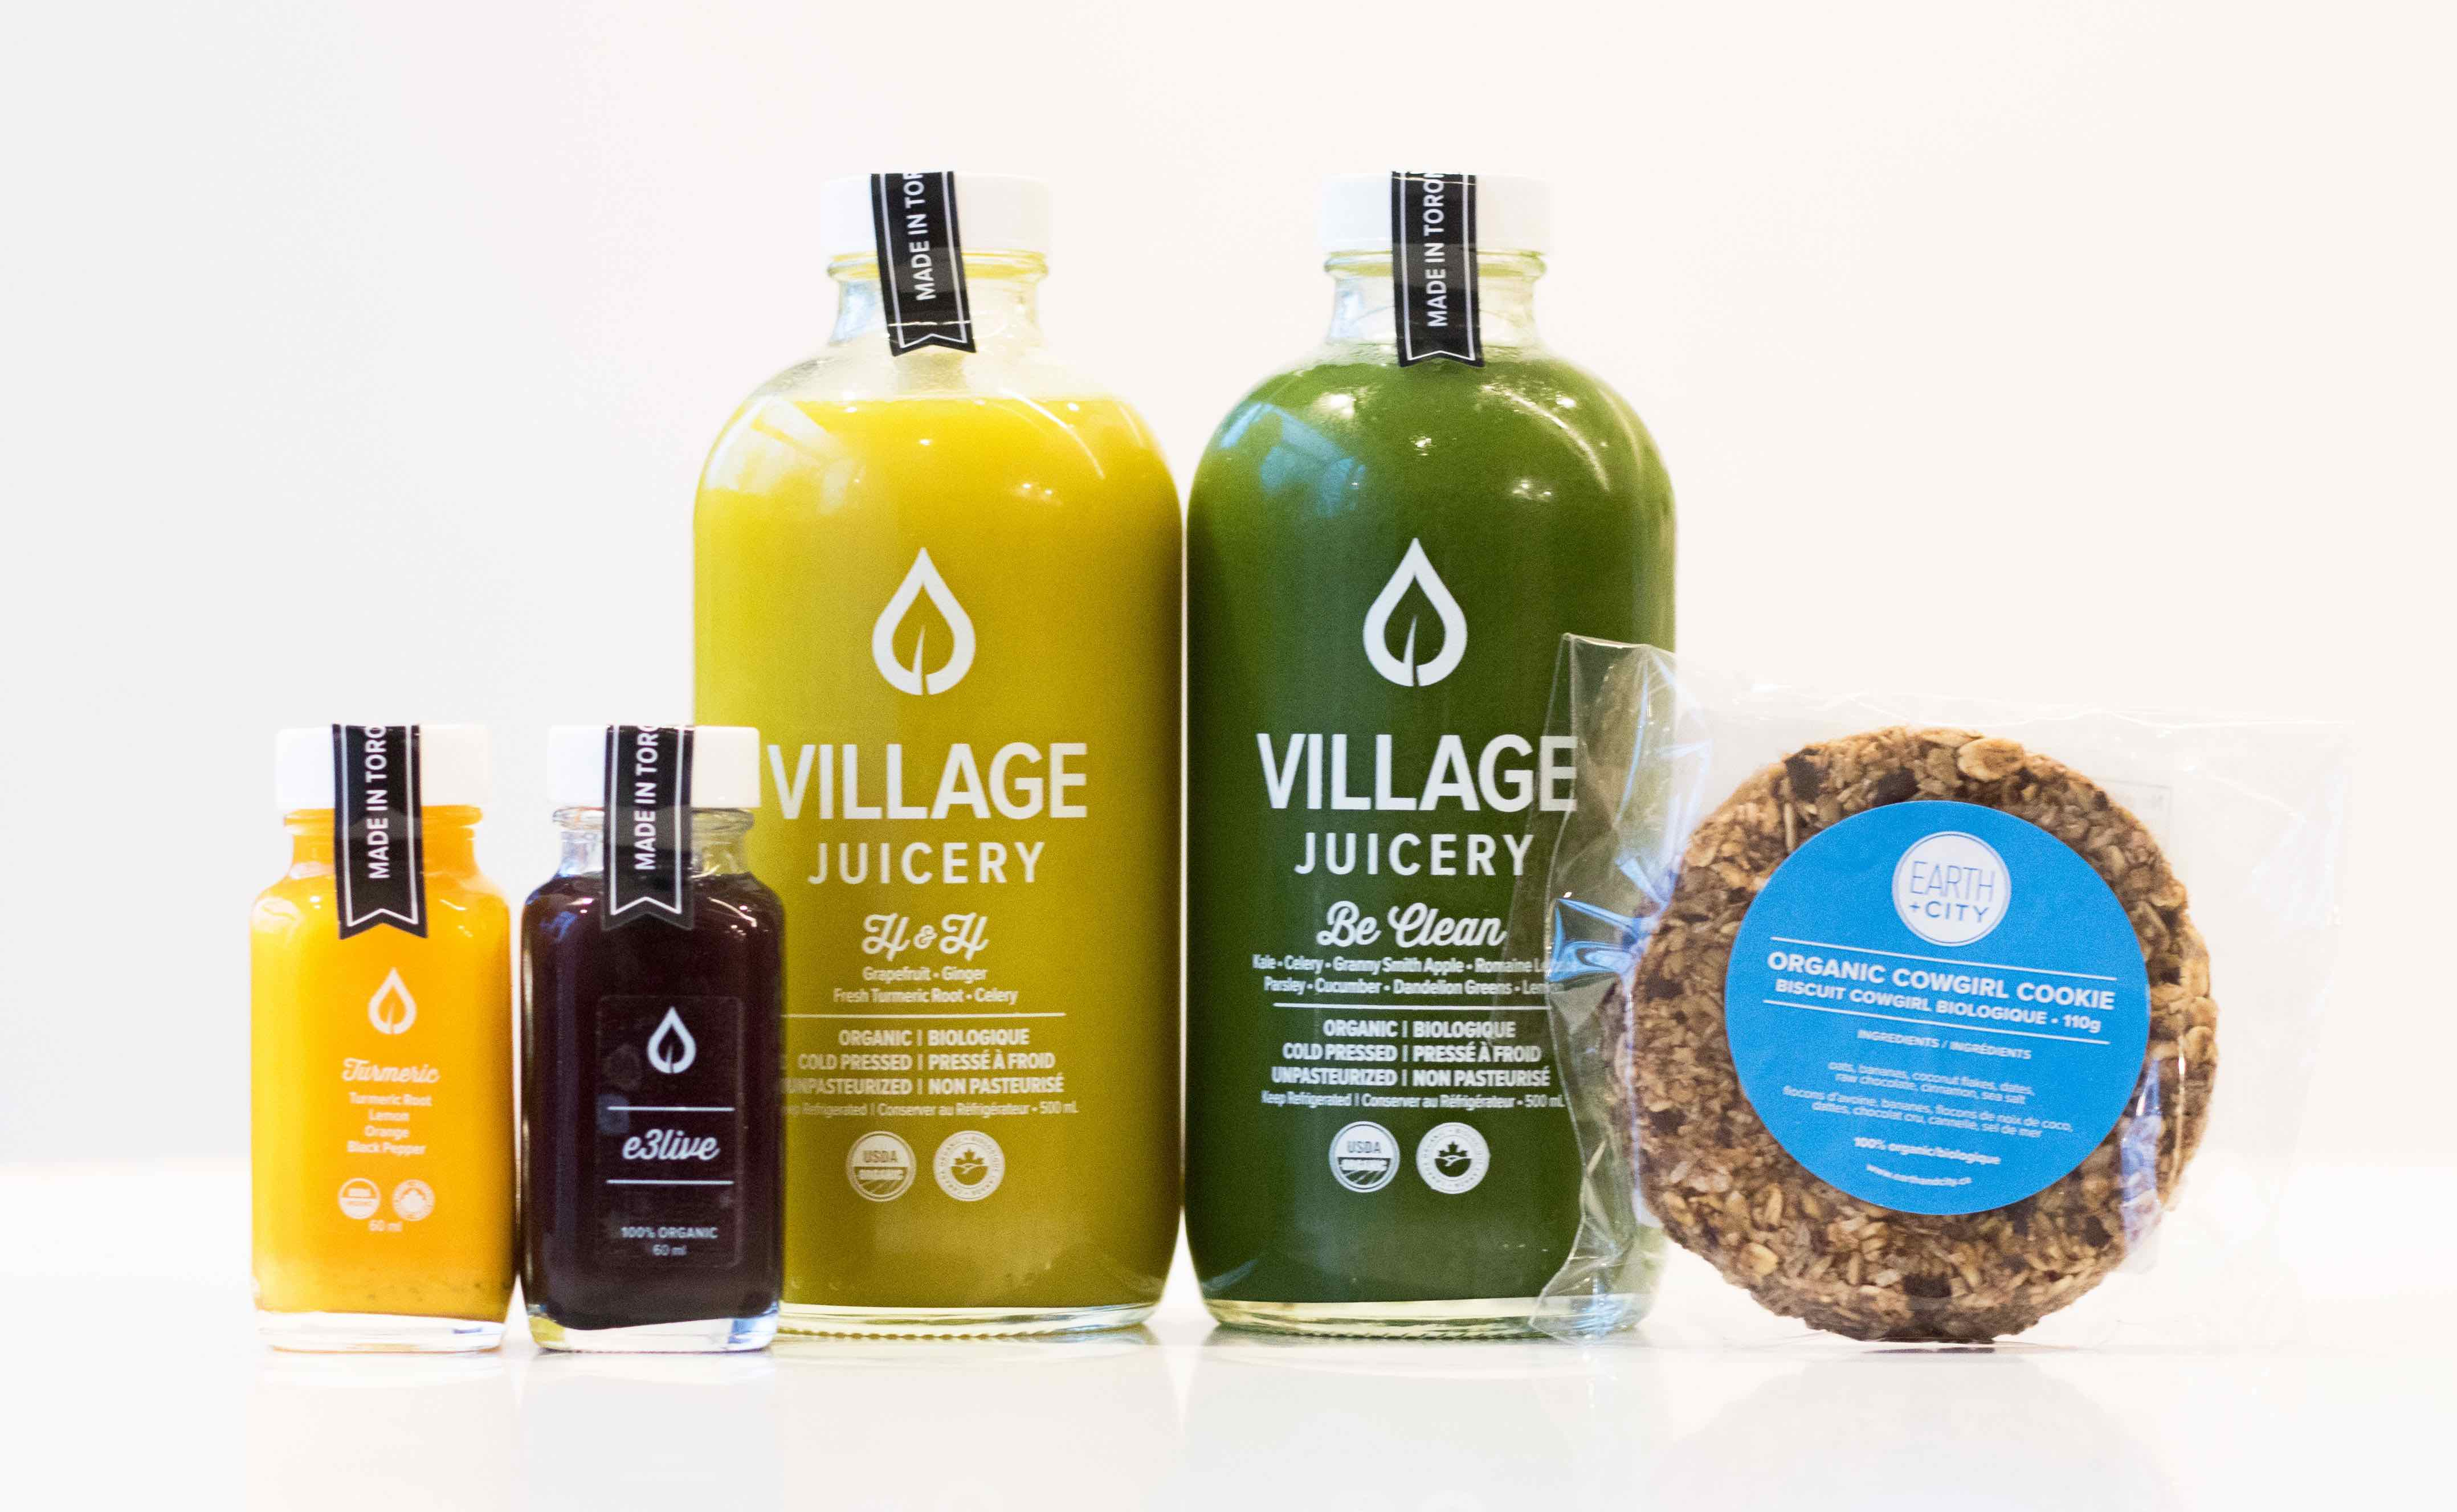 For post-travel recovery, the Village Juicery Recovery Pack reduces inflammation, boosts immunity, and nourishes dry skin. It includes Hydrate & Heal juice with Vitamin C, Potassium and Magnesium; Be Clean juice with nutrient-dense power vegetables; a wholesome Earth + City Organic Cowgirl Cookie; an E3 Live Shot; and a Turmeric Shot or Immunity Shot to reset jetlag. $30; villagejuicery.com